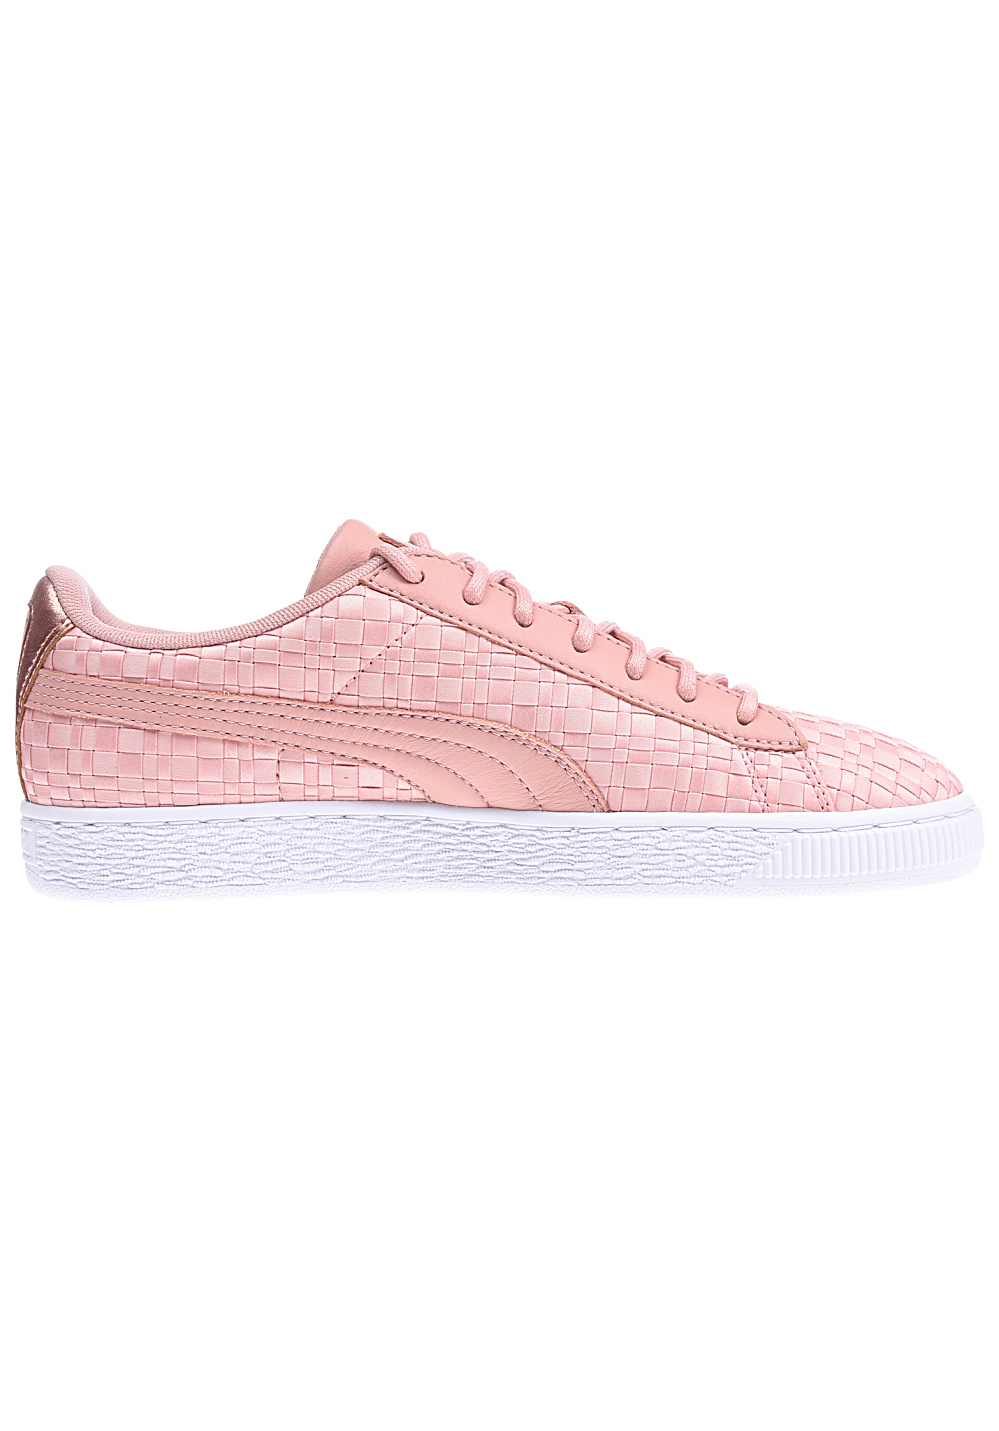 Puma Basket Satin En Pointe Rose Femmes Puma